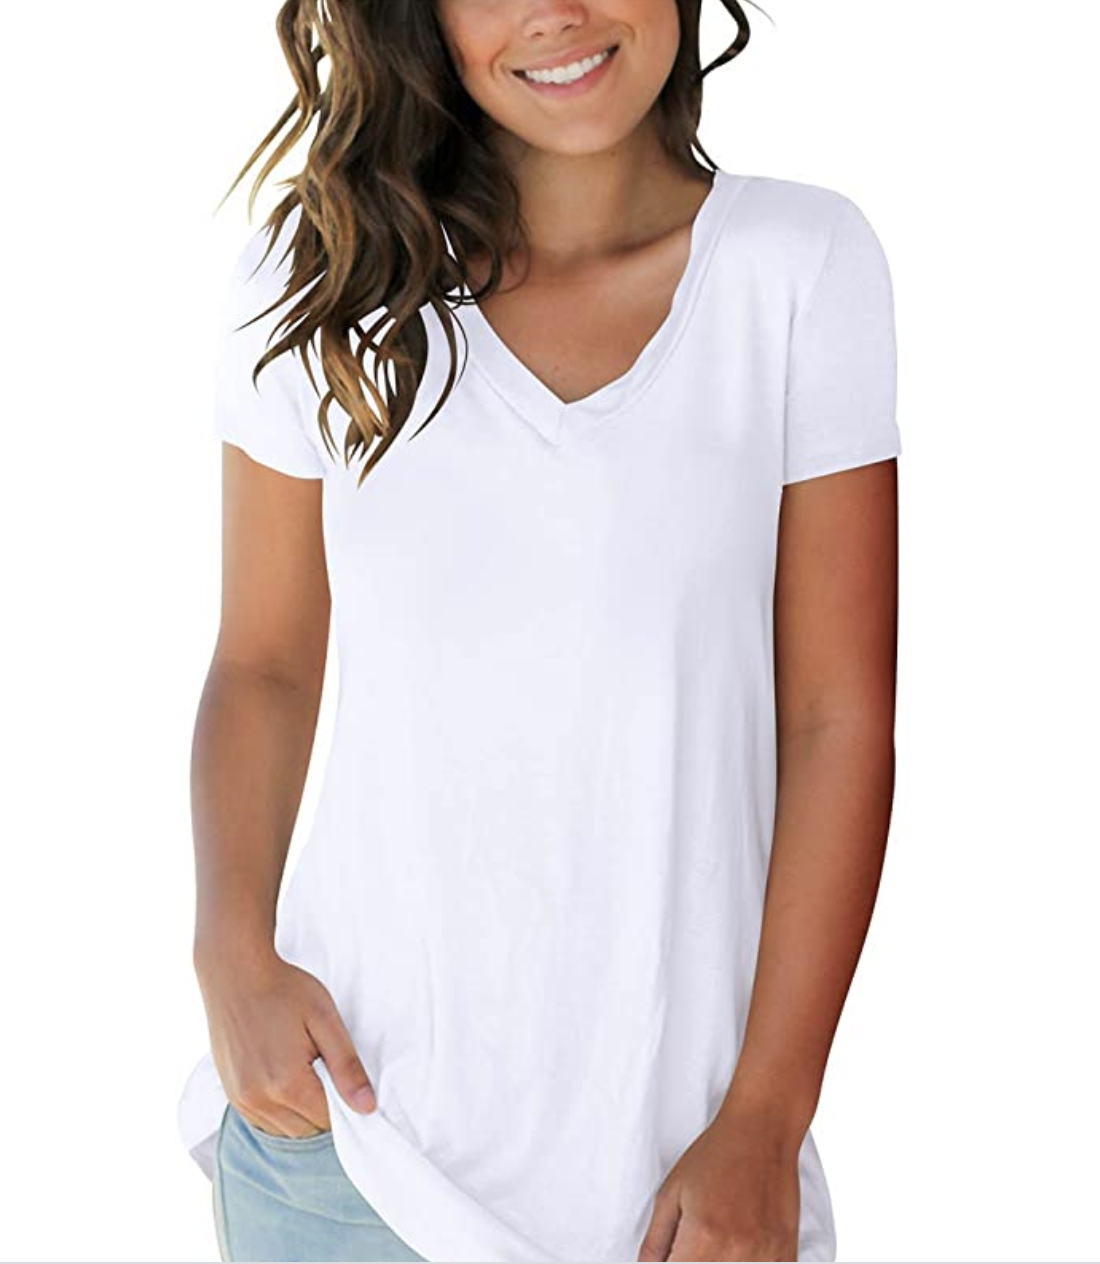 A model in a white v-neck tee